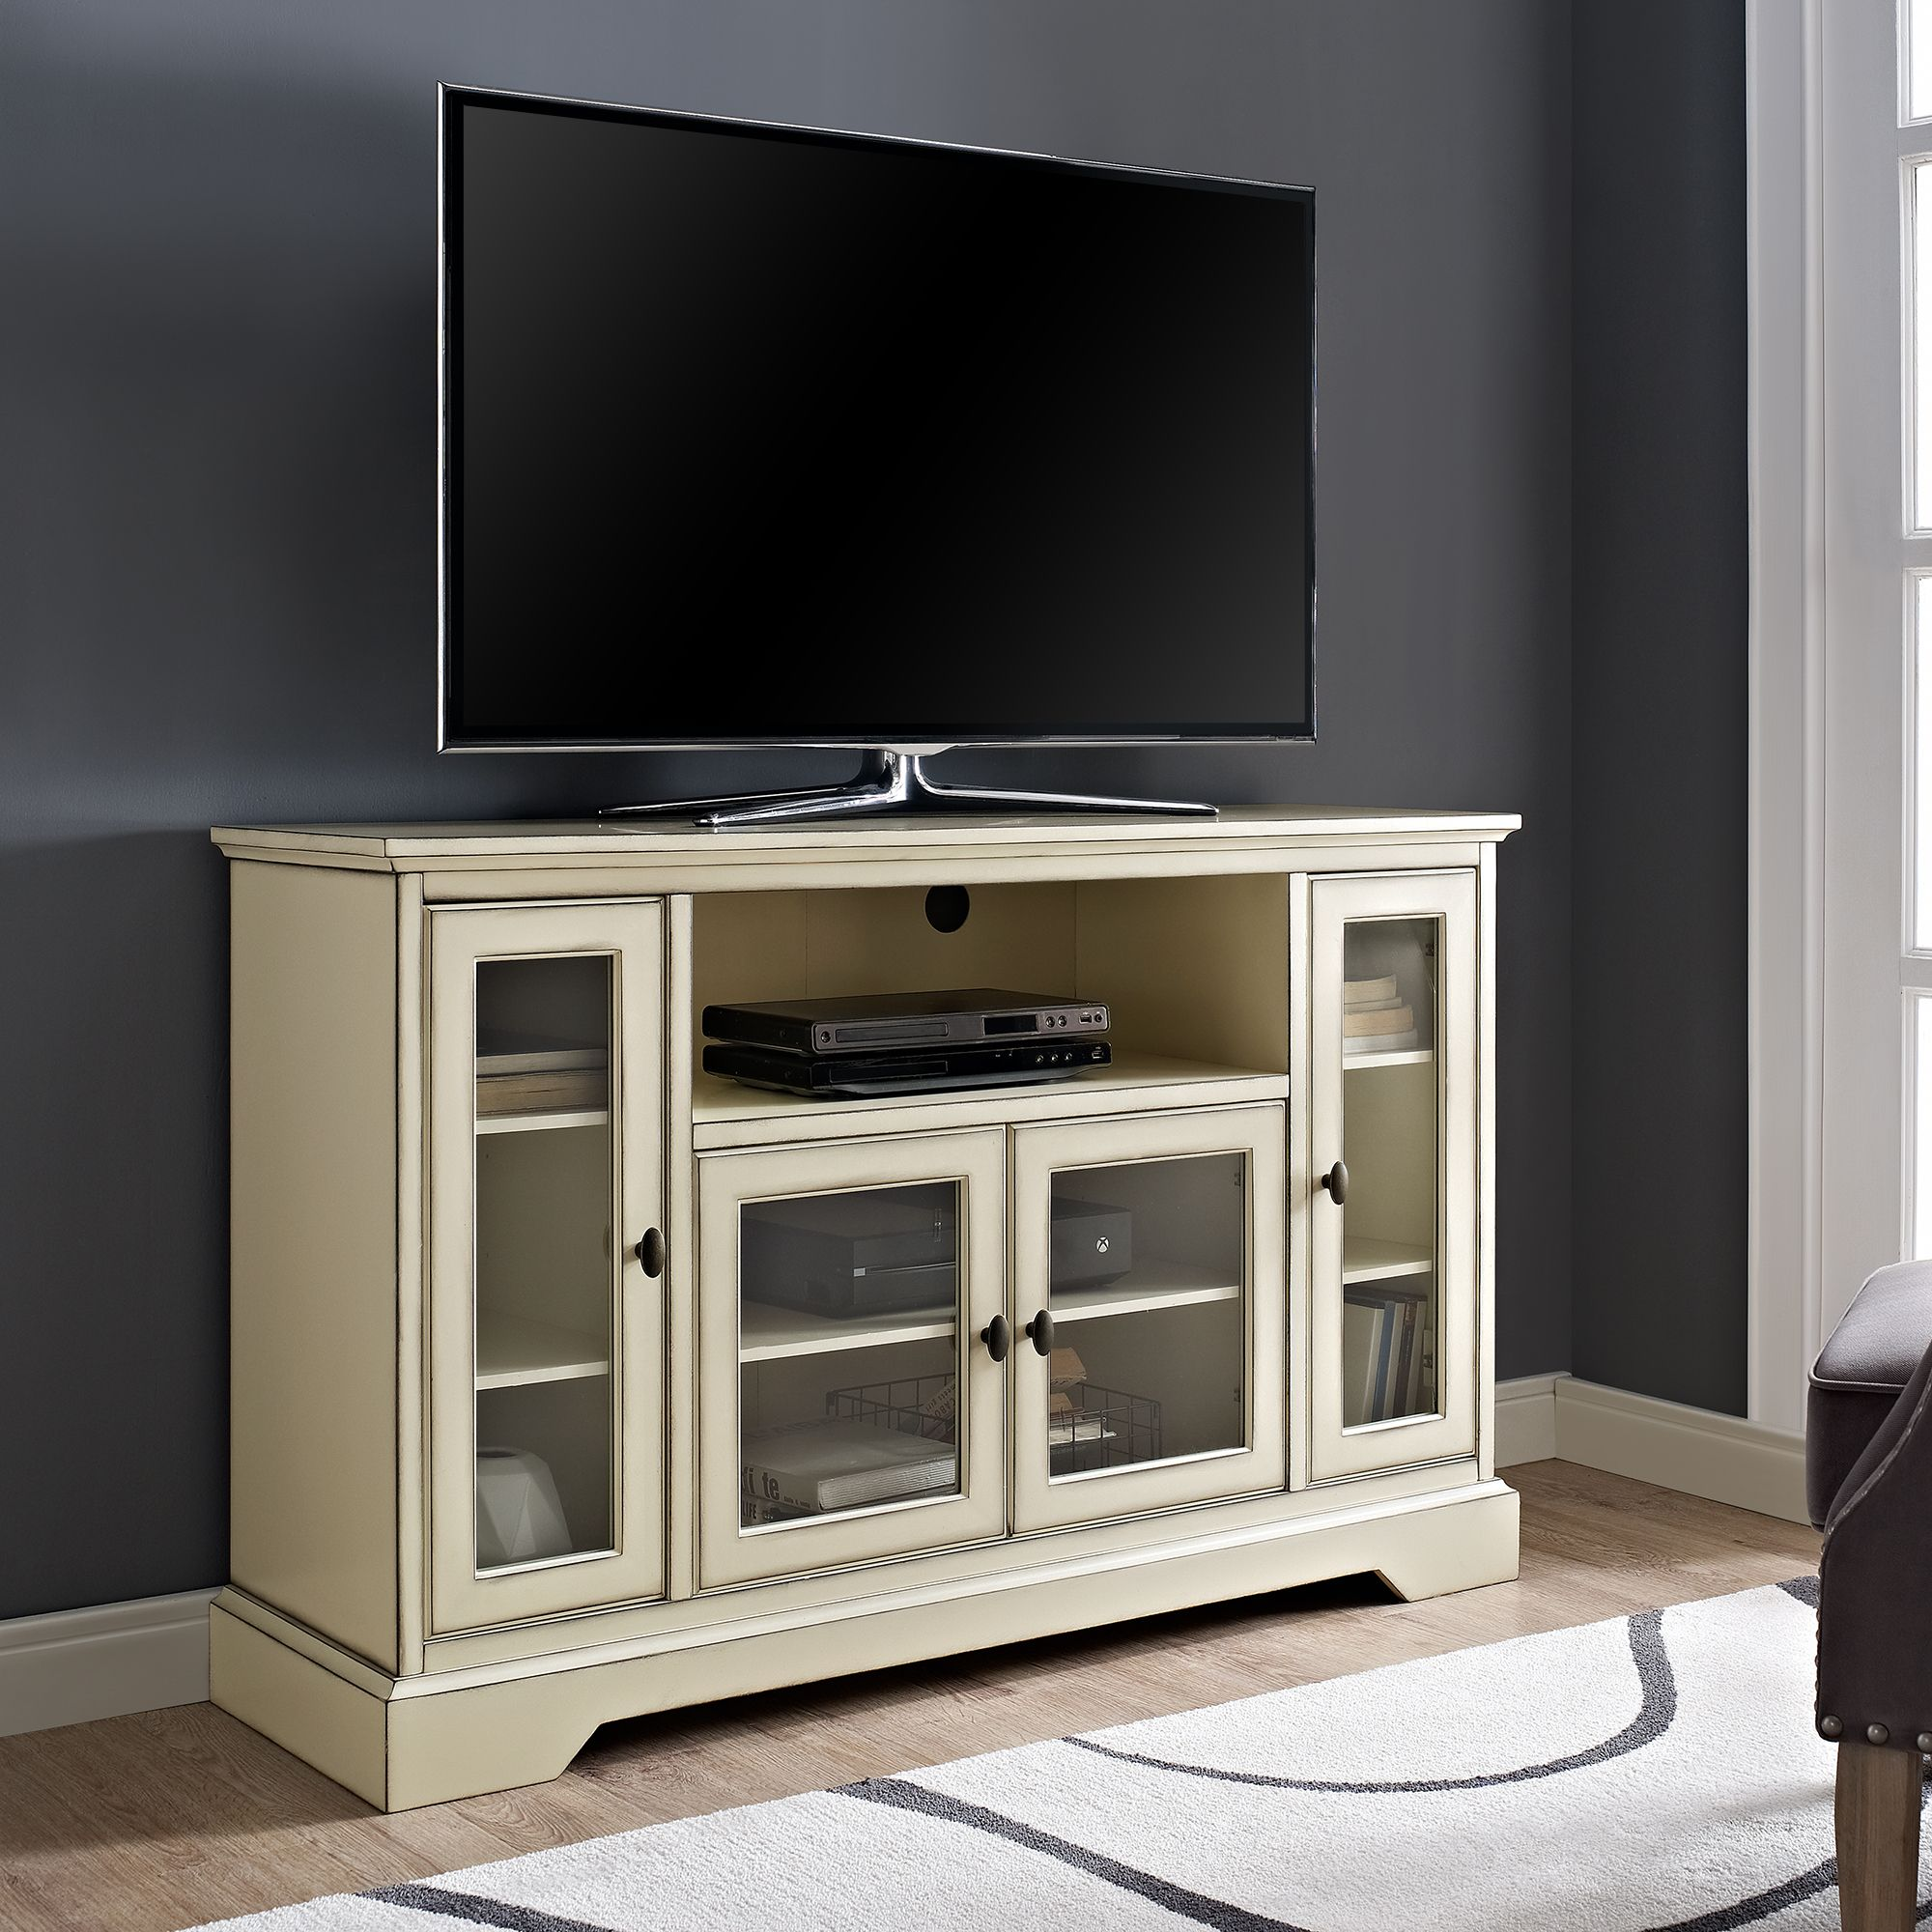 Manor Park Transitional Highboy Glass Door Antique Wood Tv Stand Antique White Walmart Com In 2021 Tv Stand Wood Tall Tv Stands Bedroom Tv Stand Tall wood tv stand